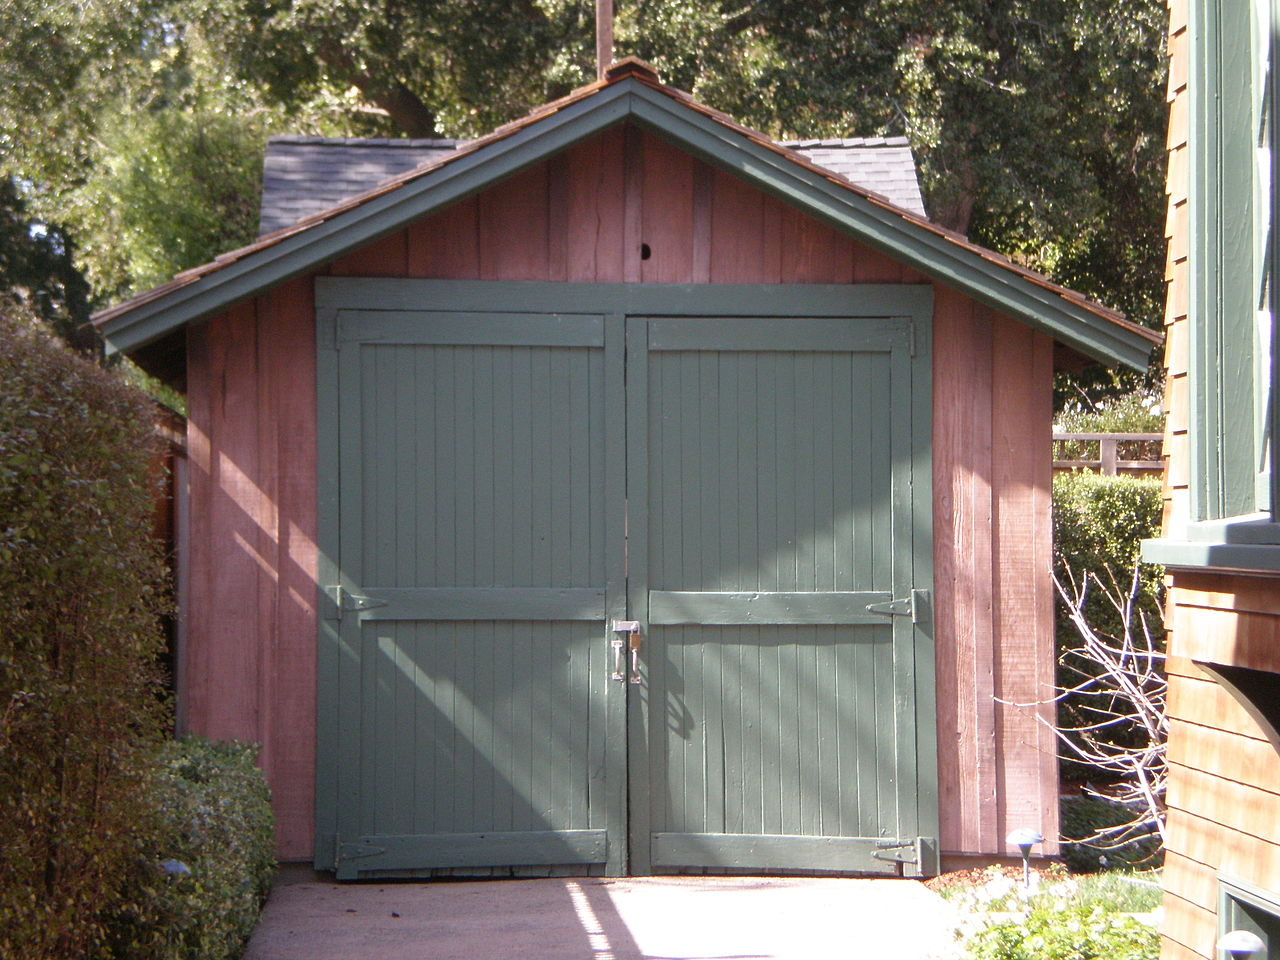 HP was founded in David Packard Garage